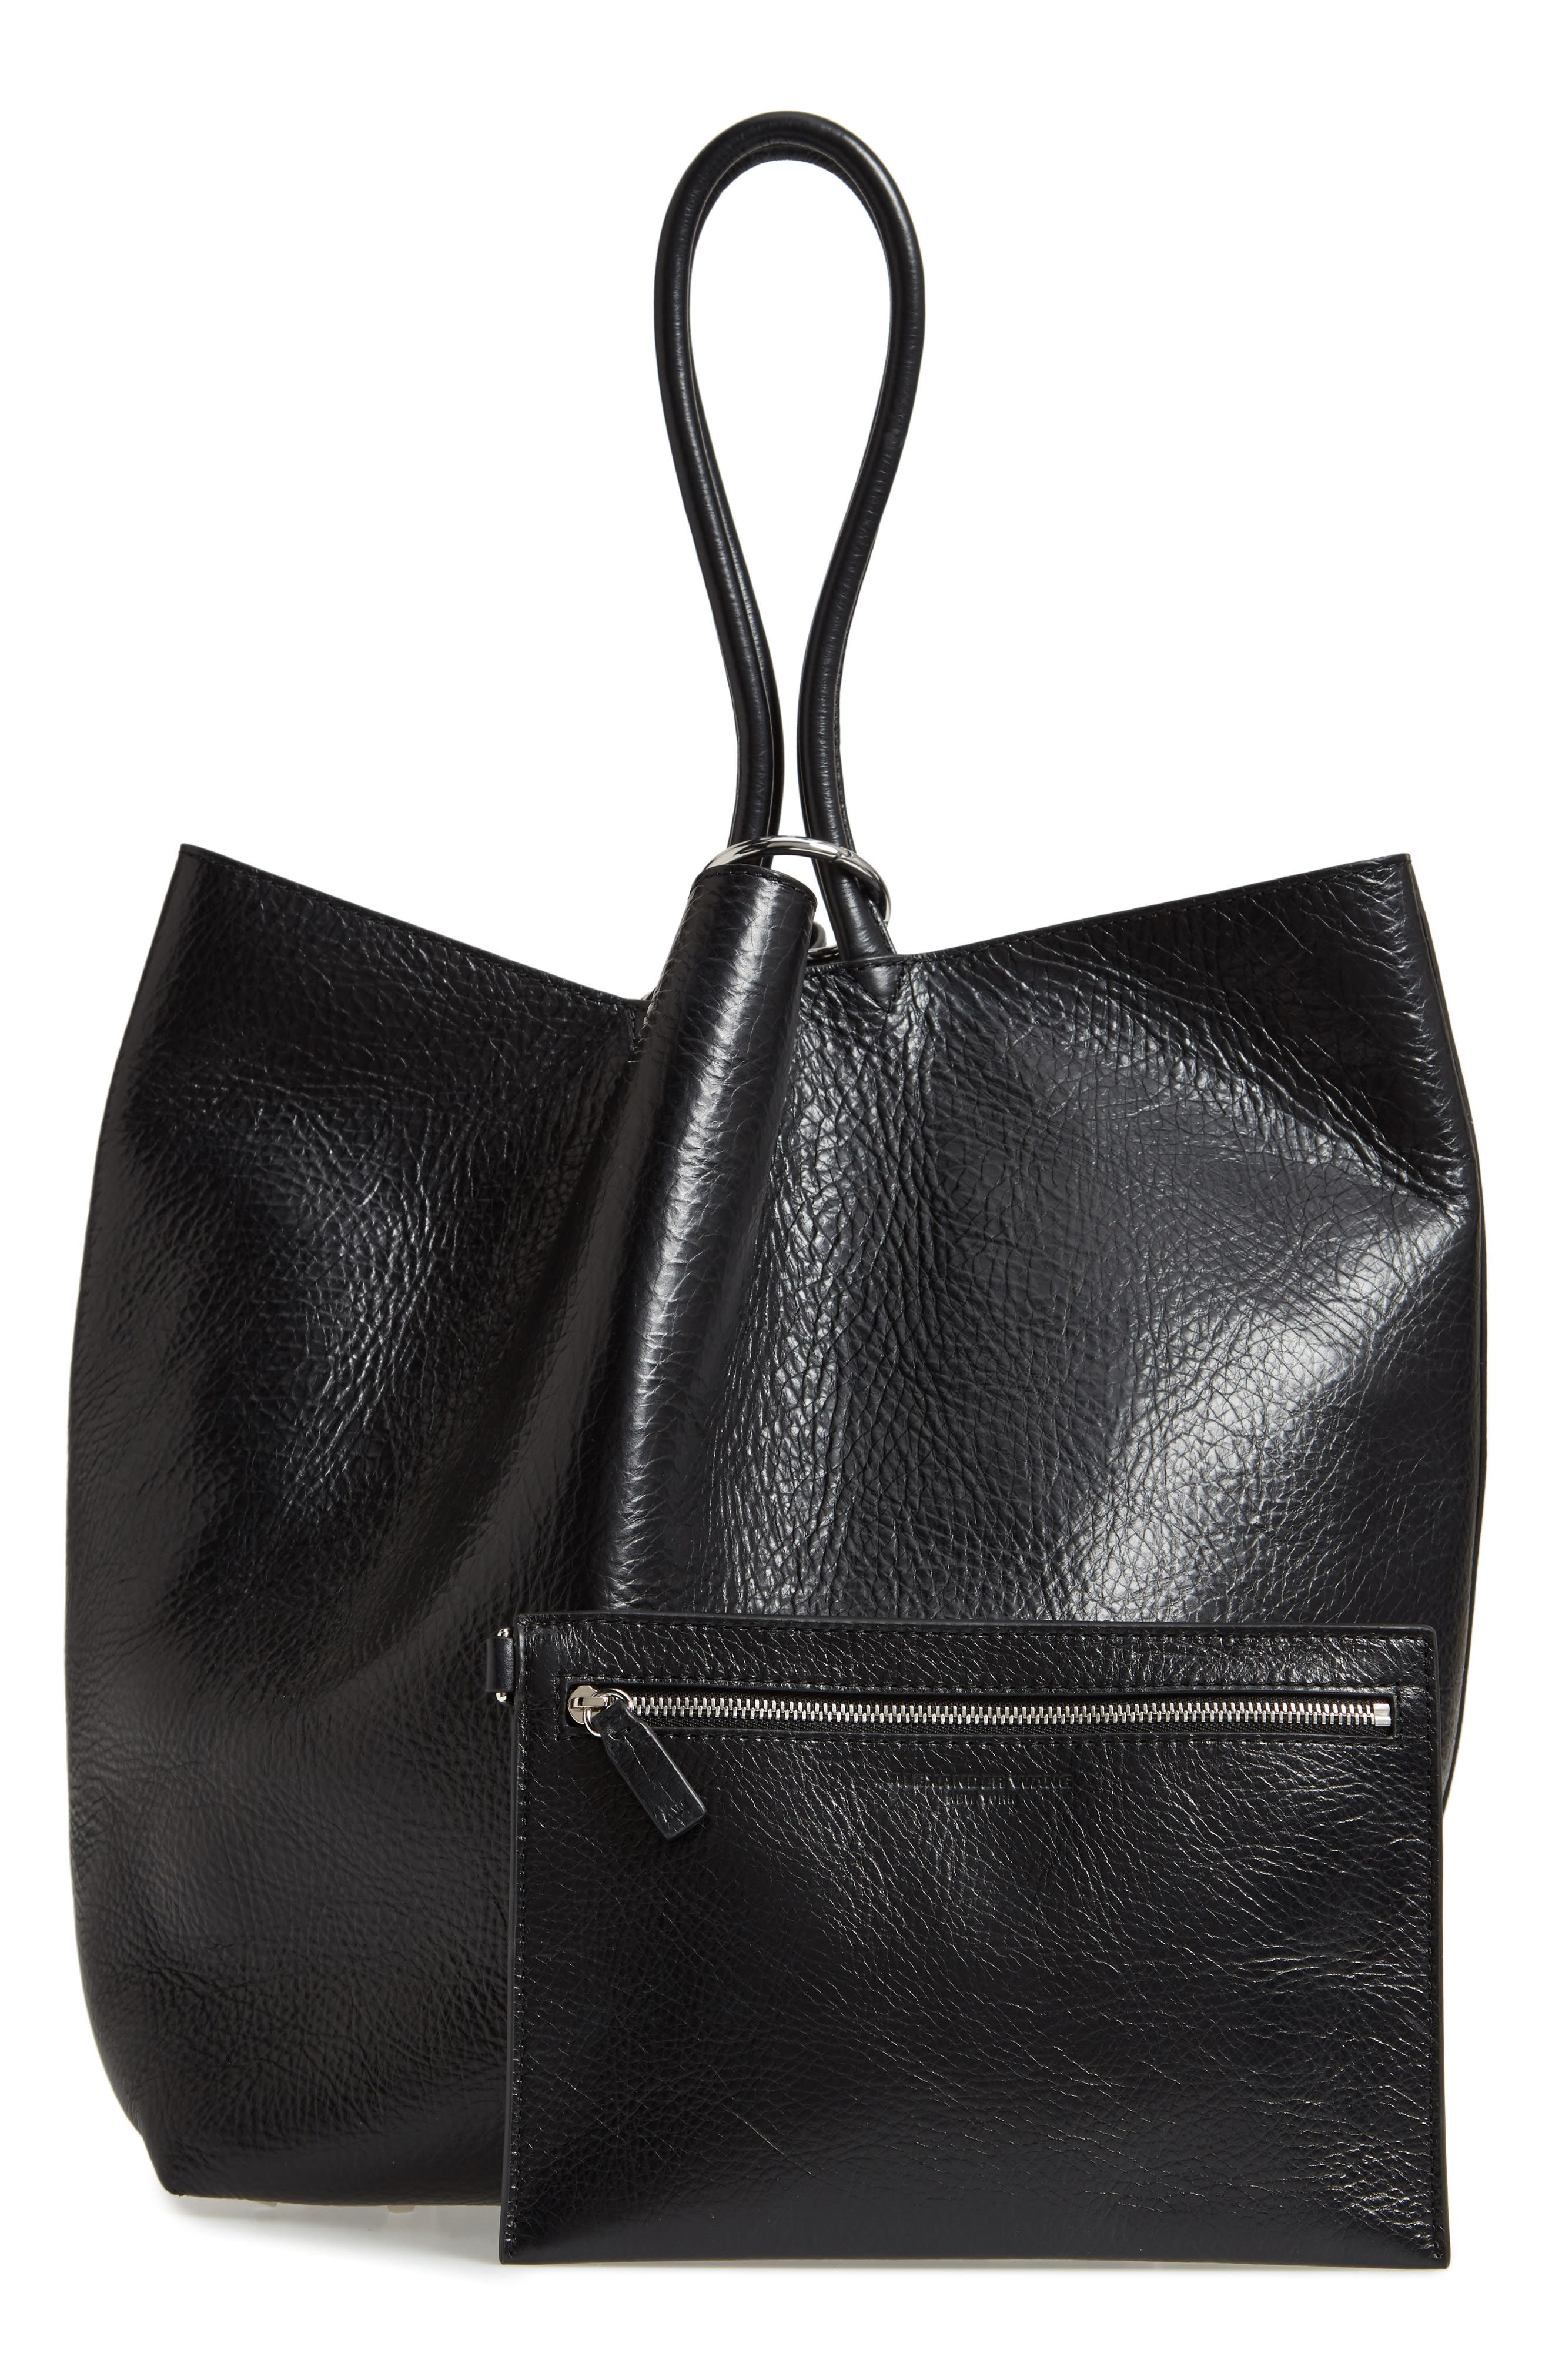 ALEXANDER WANG,                             Large Roxy Leather Tote Bag,                             Alternate thumbnail 3, color,                             BLACK